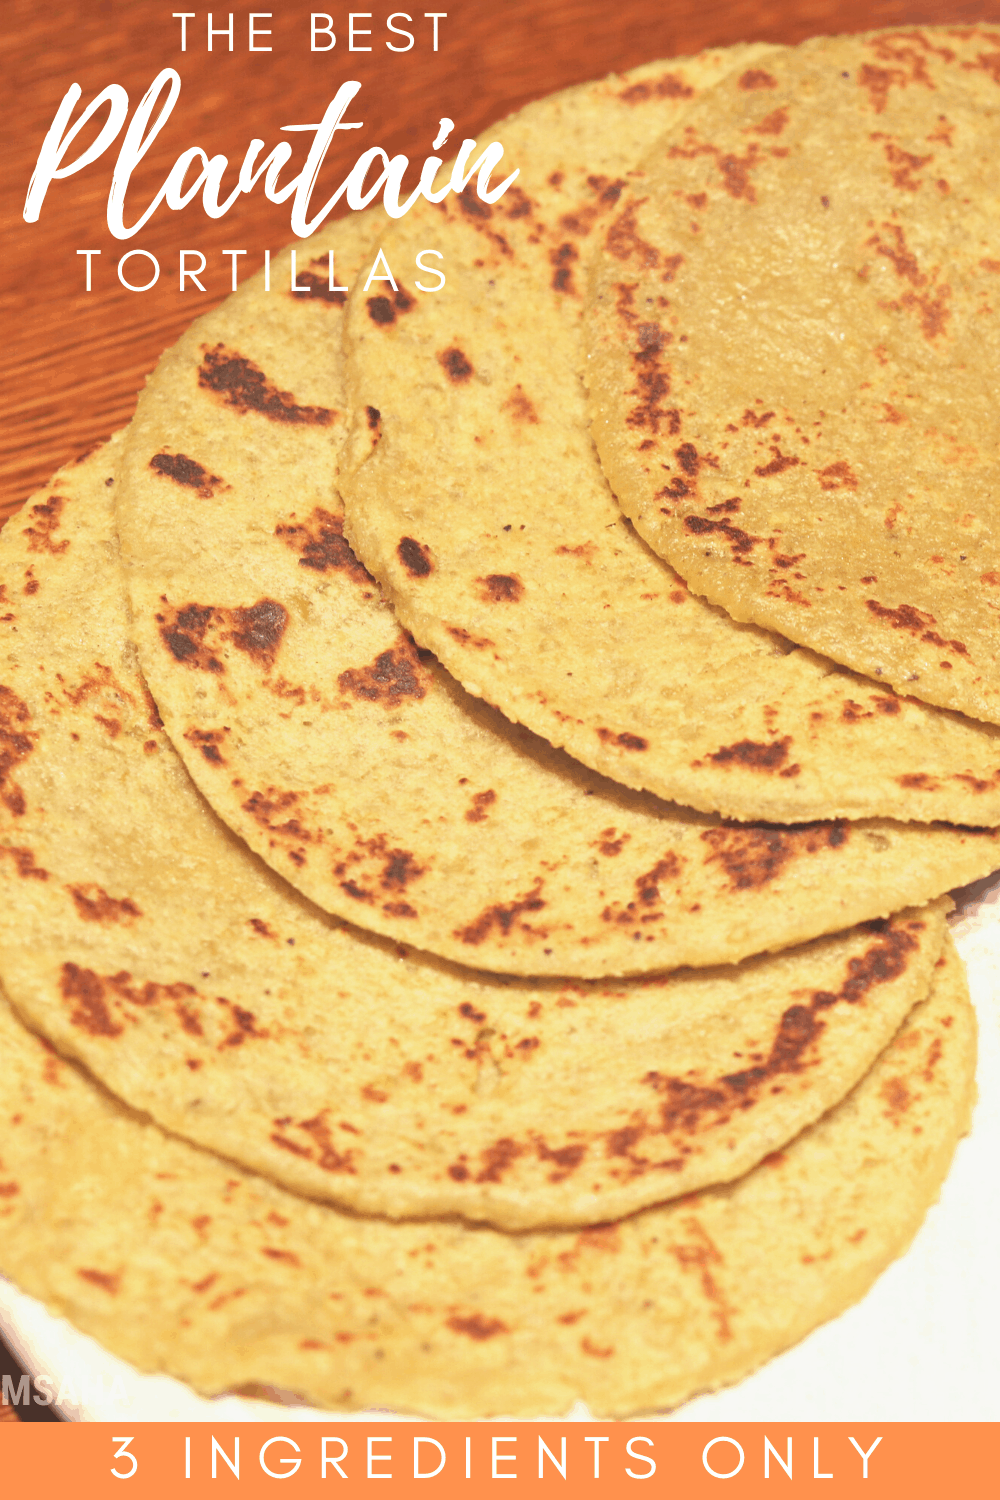 The best tortillas de platanos (plantain ingredients) that are delicious, easy to make and only requires three ingredients to make. #puertoricanfood #hispanicrecipe #plantains #tortillas via @mystayathome